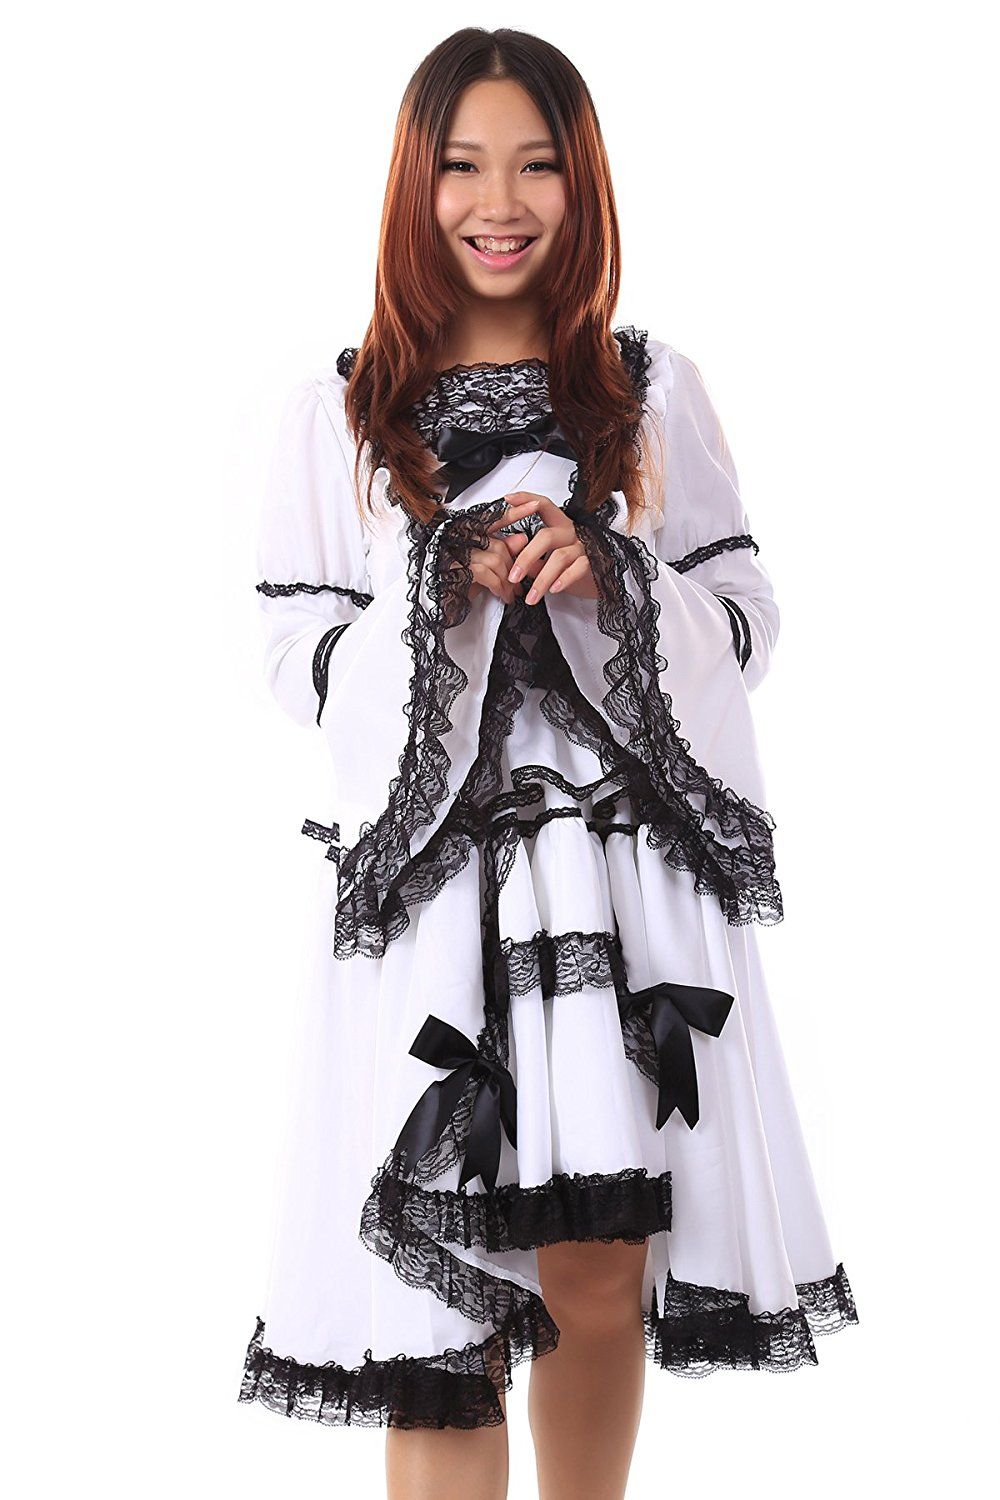 WS_COS Lolita Culture Cosplay Costume Lolita Dress 19th Version Set XS * Click image to review more details.